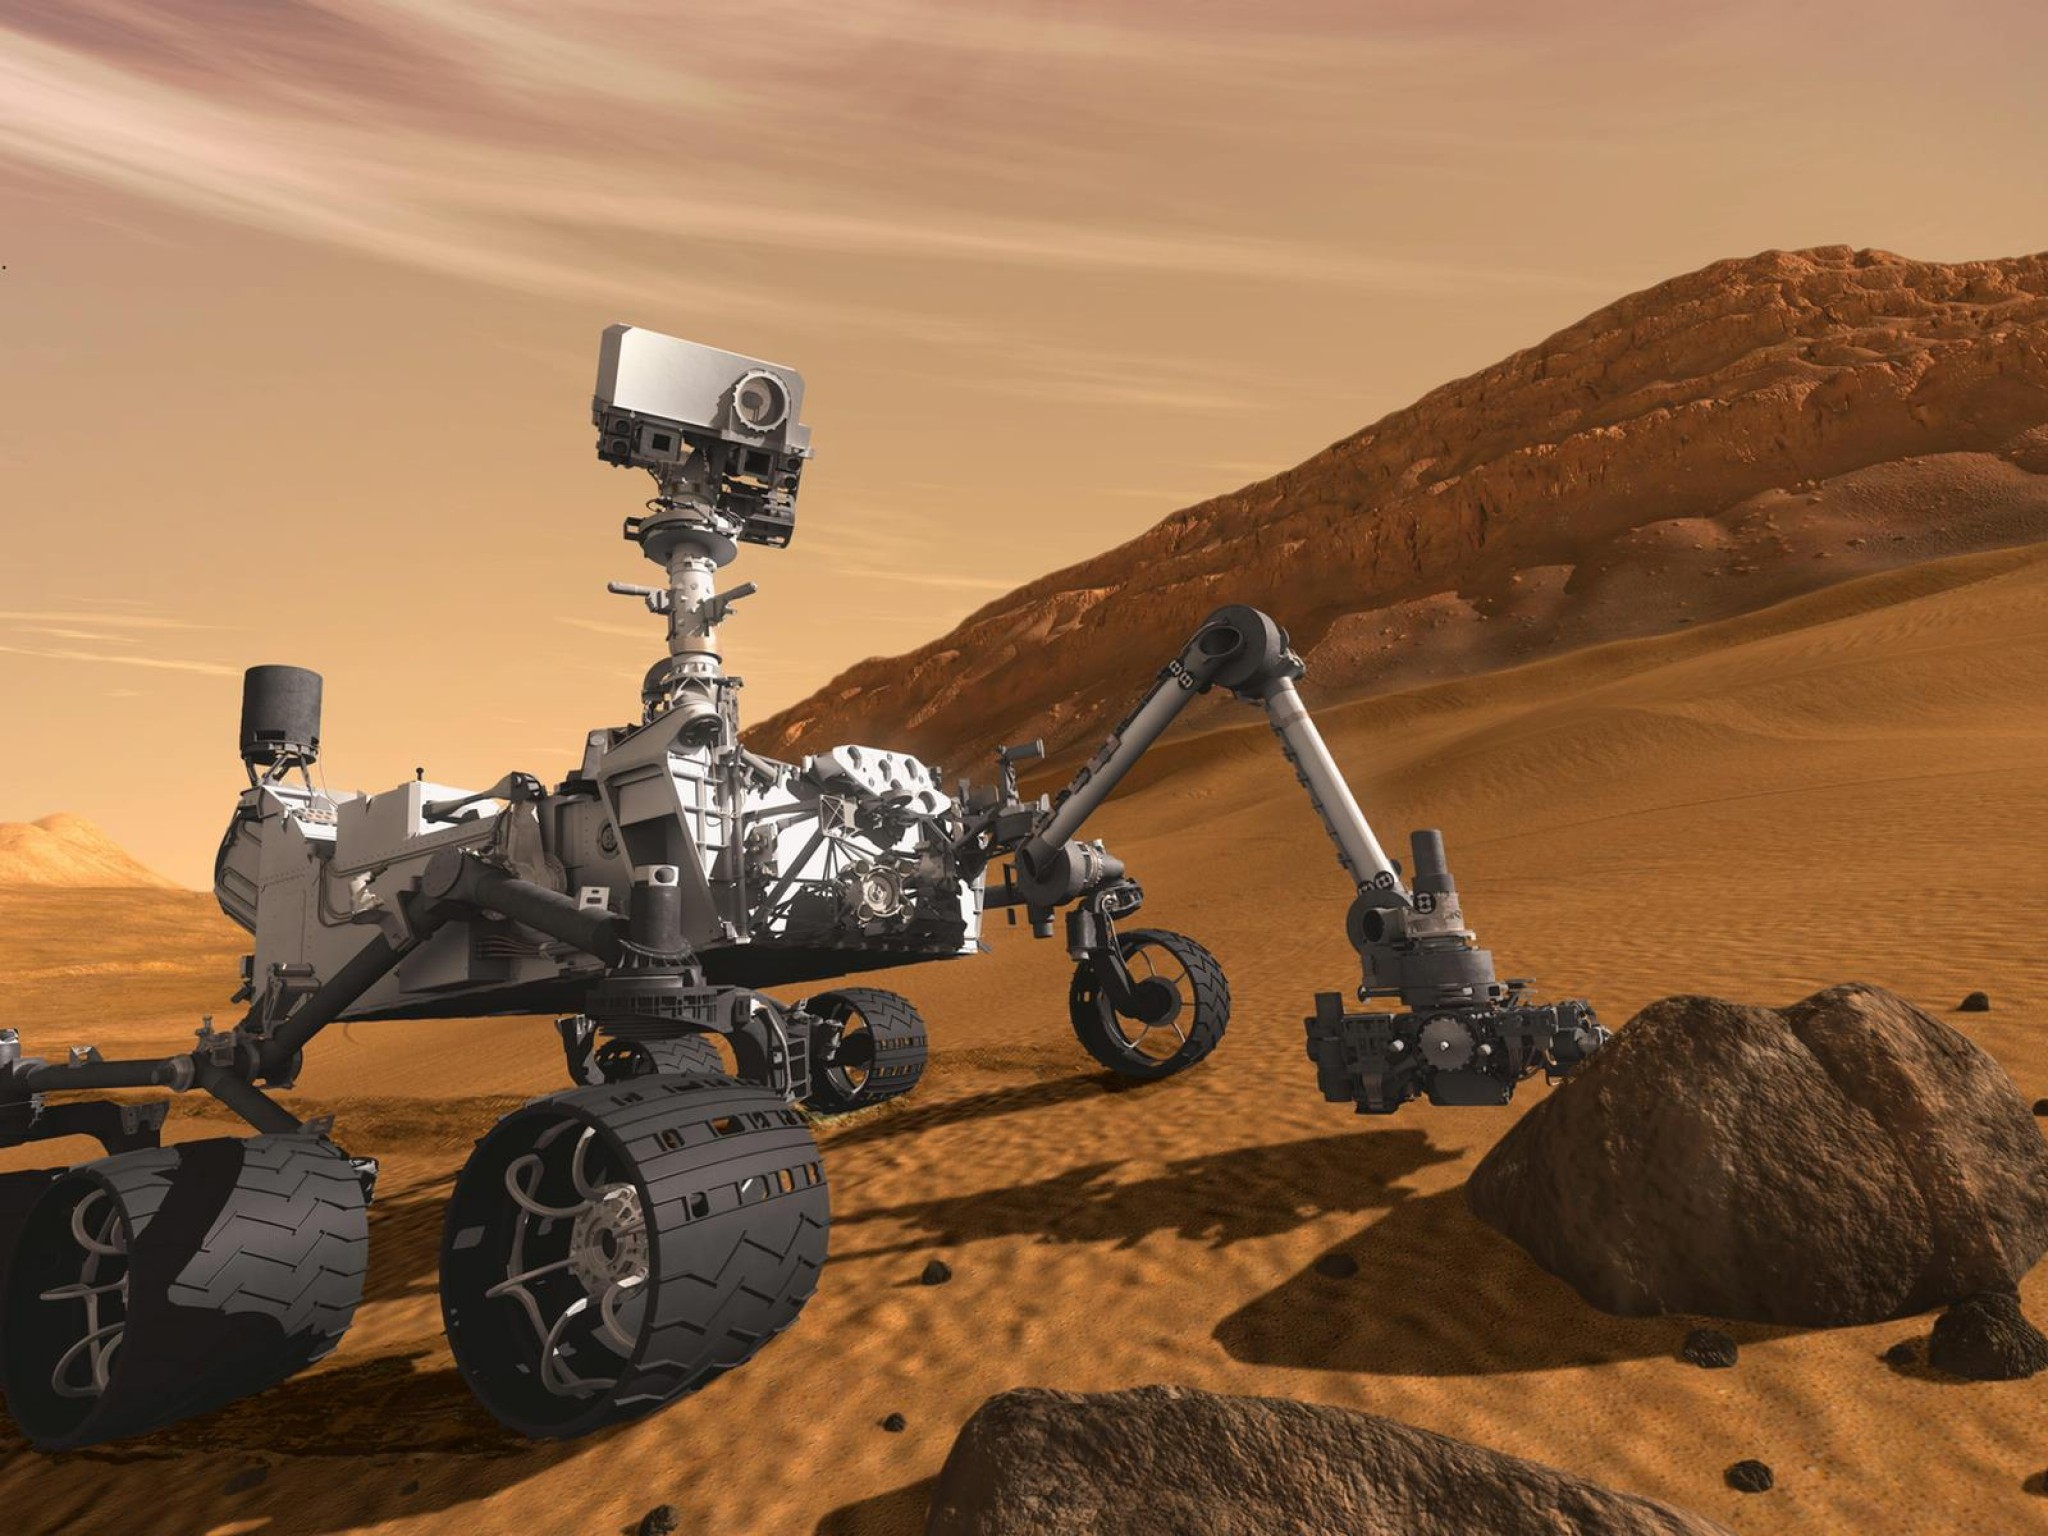 Planetary geologist Bethany Ehlmann is one of the scientists who gives NASA's Mars Curiosity Rover its marching orders, analyzing the rocks its collects for clues to the planet's history.